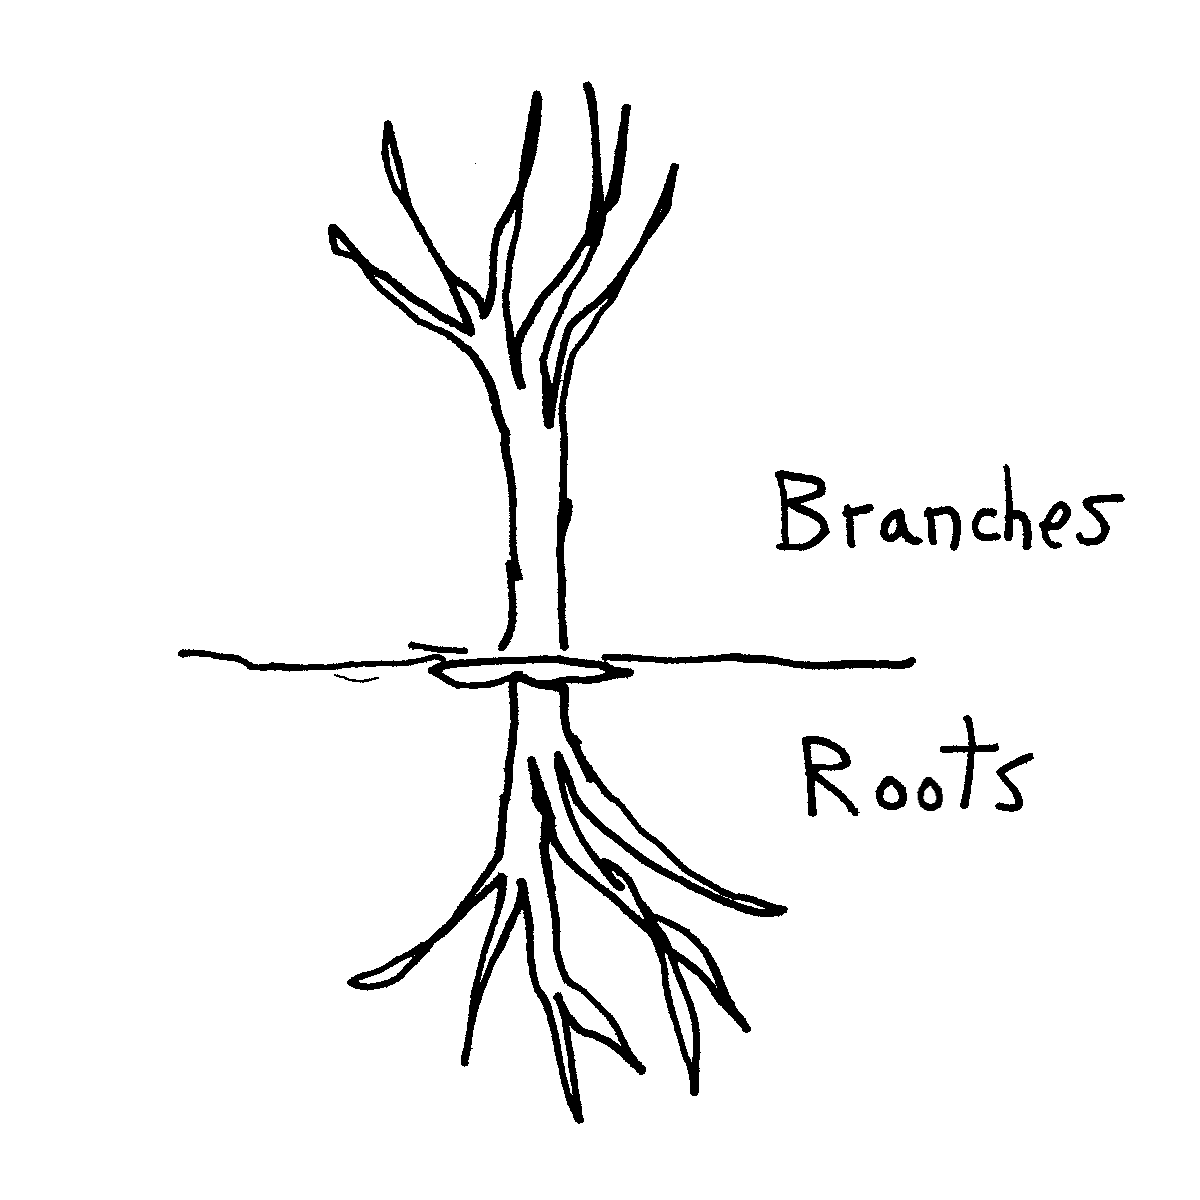 roots branches cartoon doodle